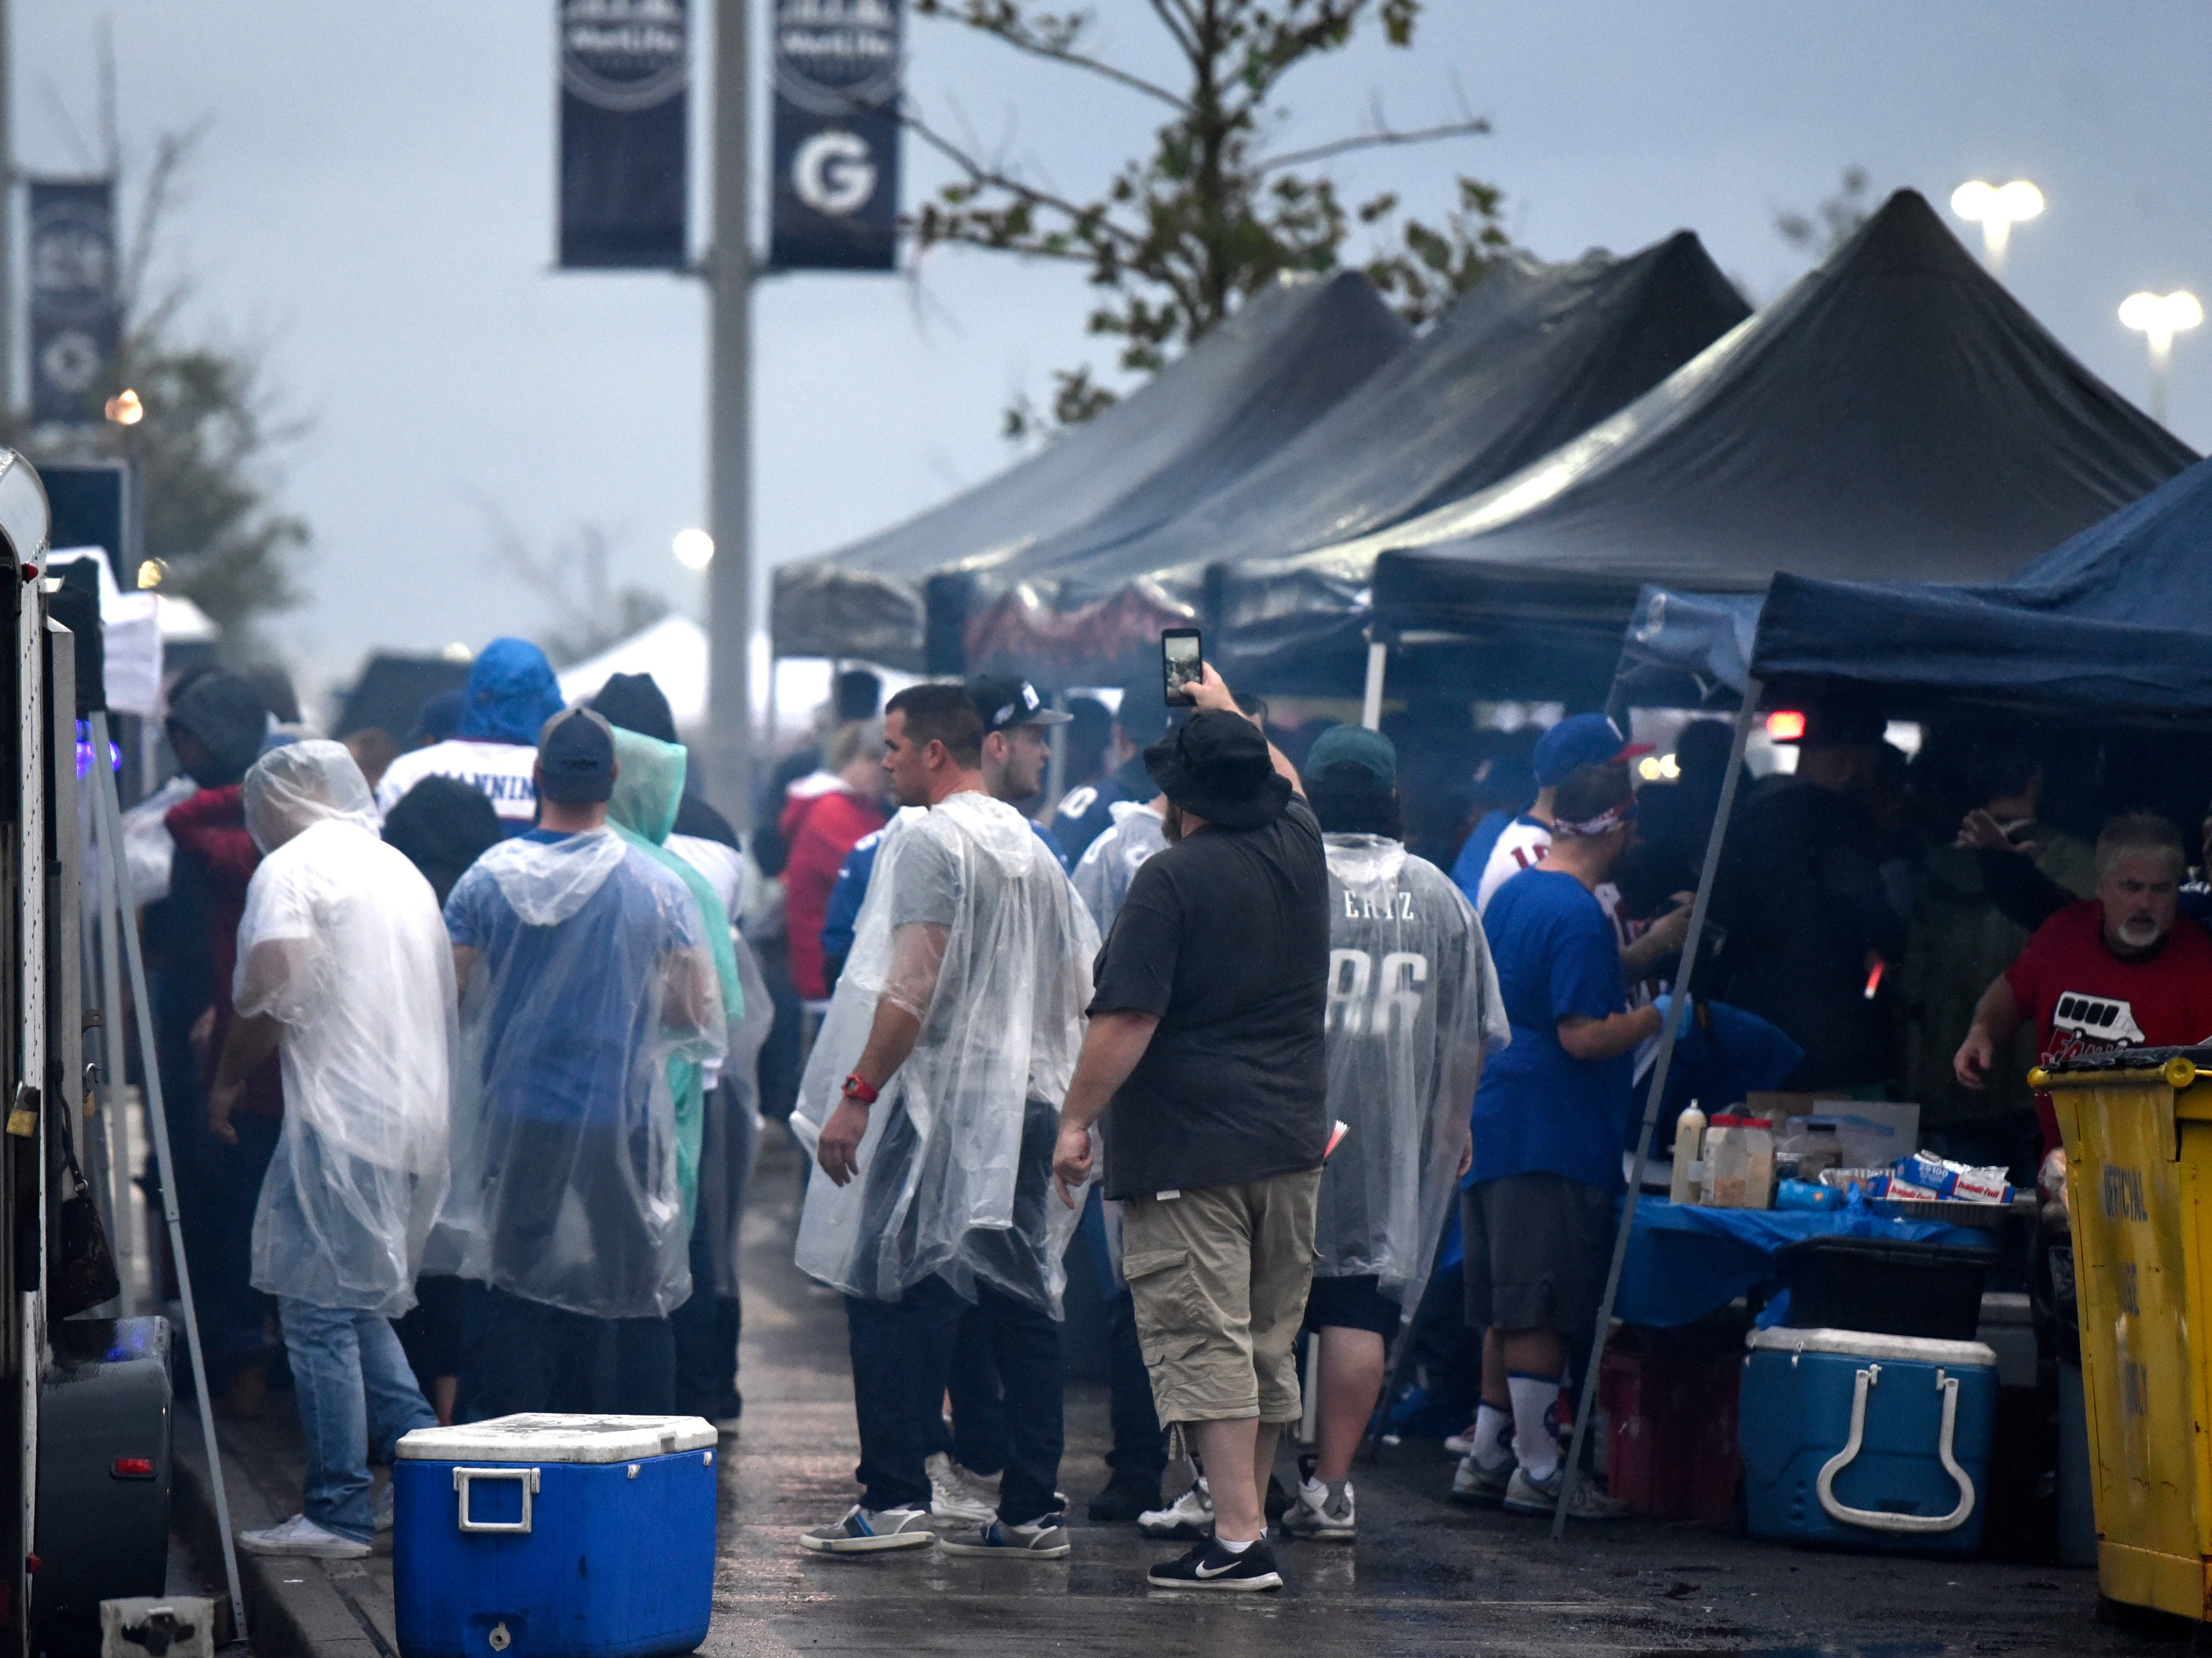 Tailgaters hang out in the rainy parking lot of MetLife Stadium before the New York Giants face the Philadelphia Eagles on Thursday, Oct. 11, 2018.